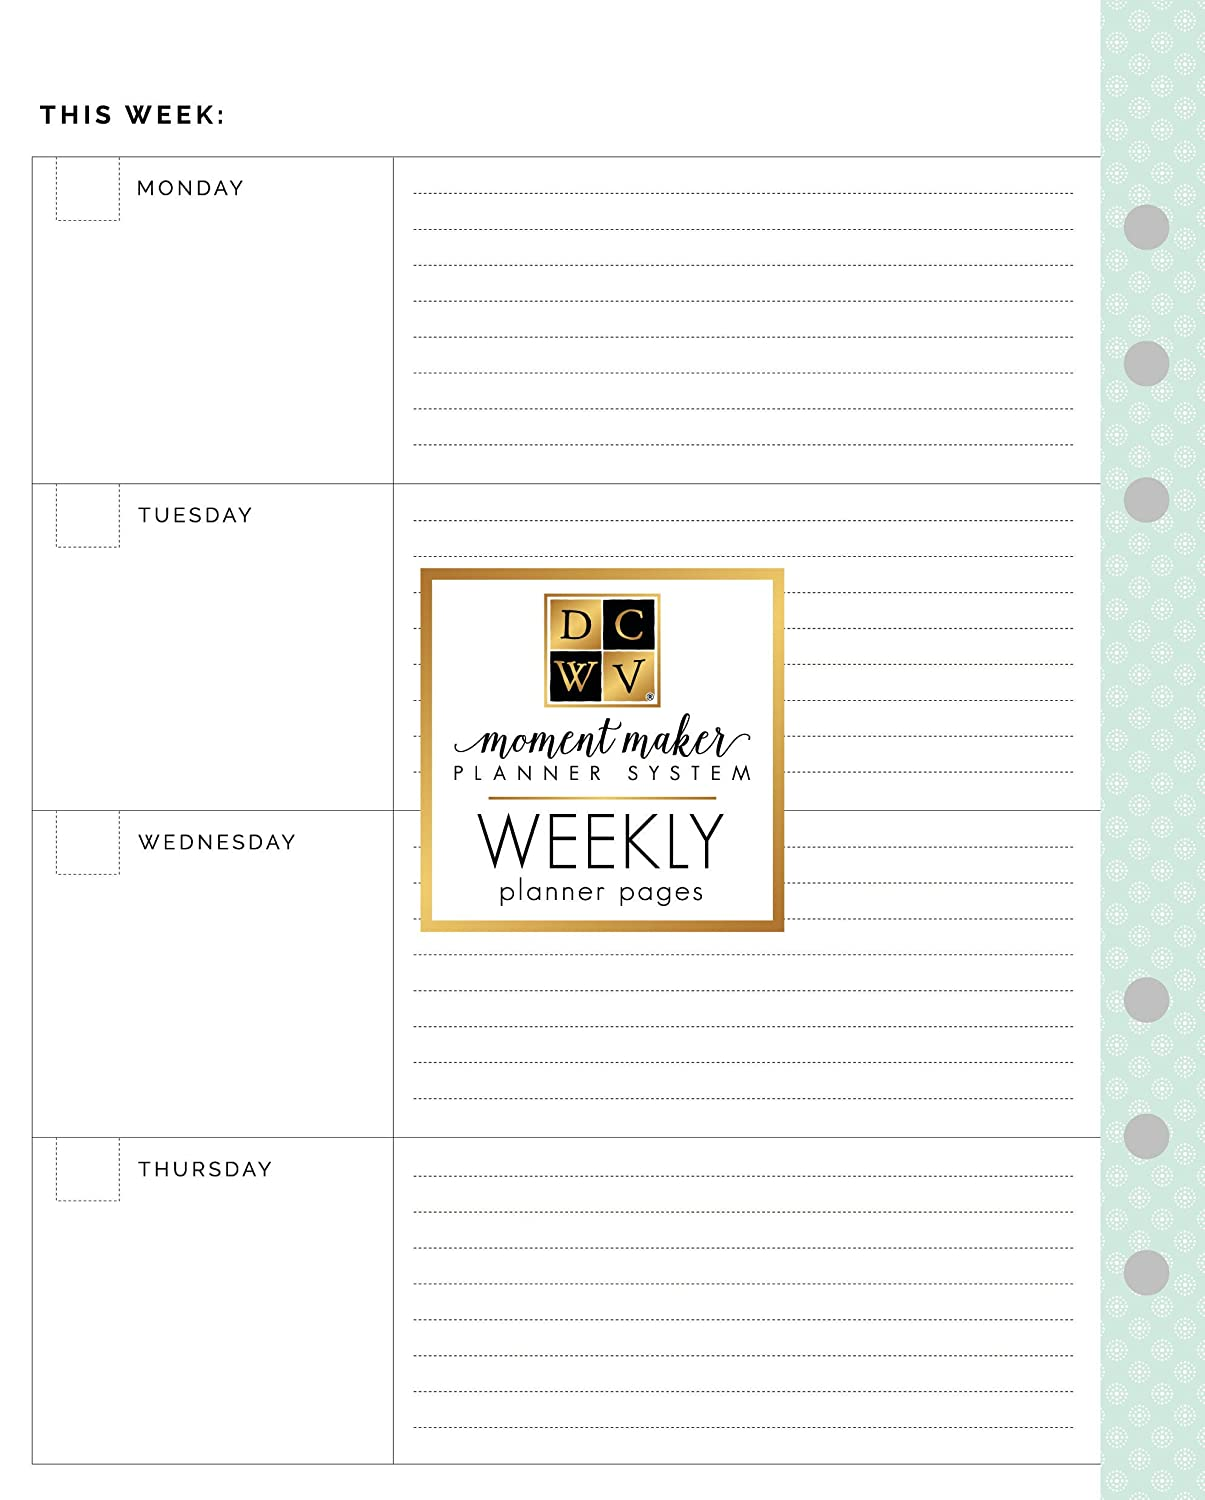 picture relating to Weekly Planner Printables identified as DCWV Minute Producer Weekly Planner Webpages